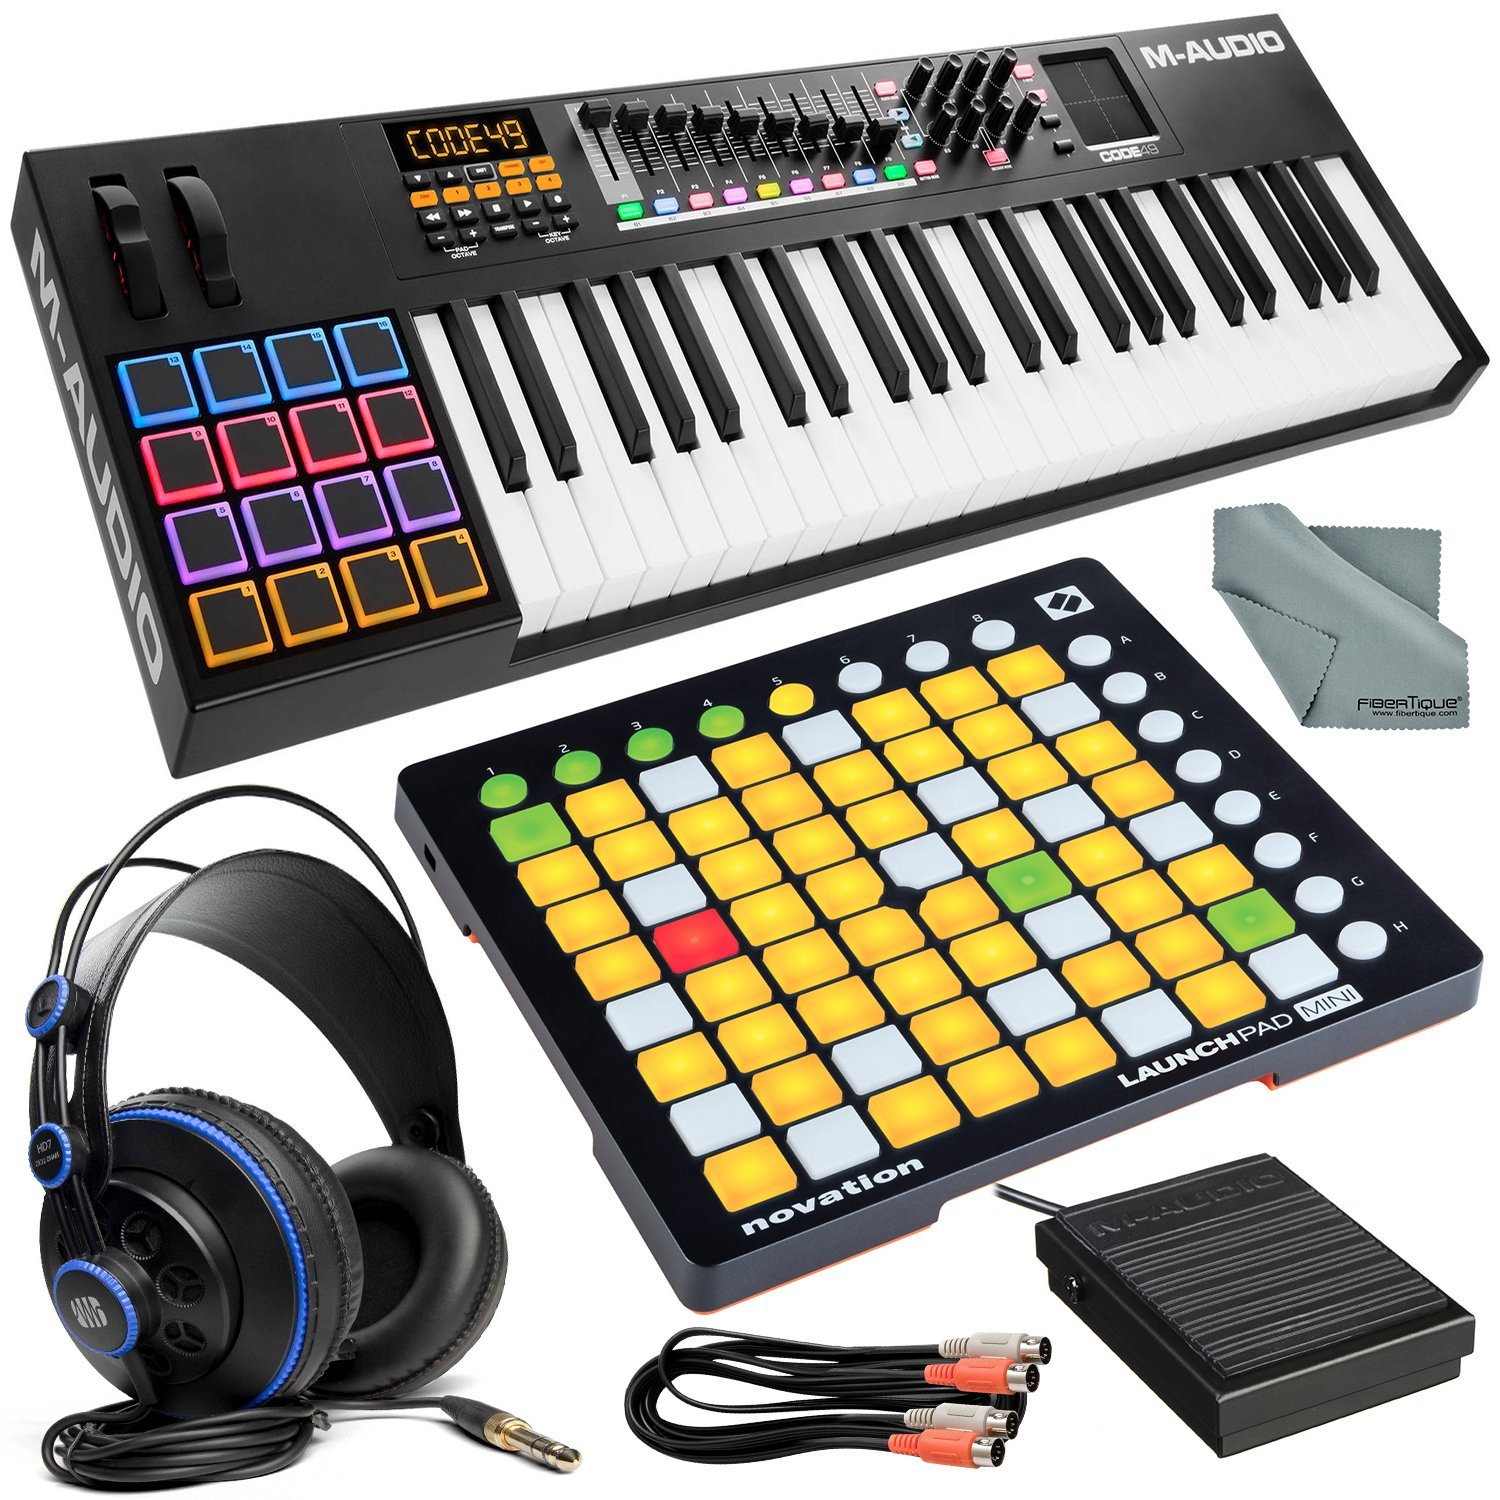 M-Audio Code 49 49-Key USB-MIDI Keyboard Controller with X/Y Touch Pad and Ableton Live Control Platinum Bundle w/Novation Launchpad MKII + PreSonus HD7 Headphones + More by Photo Savings